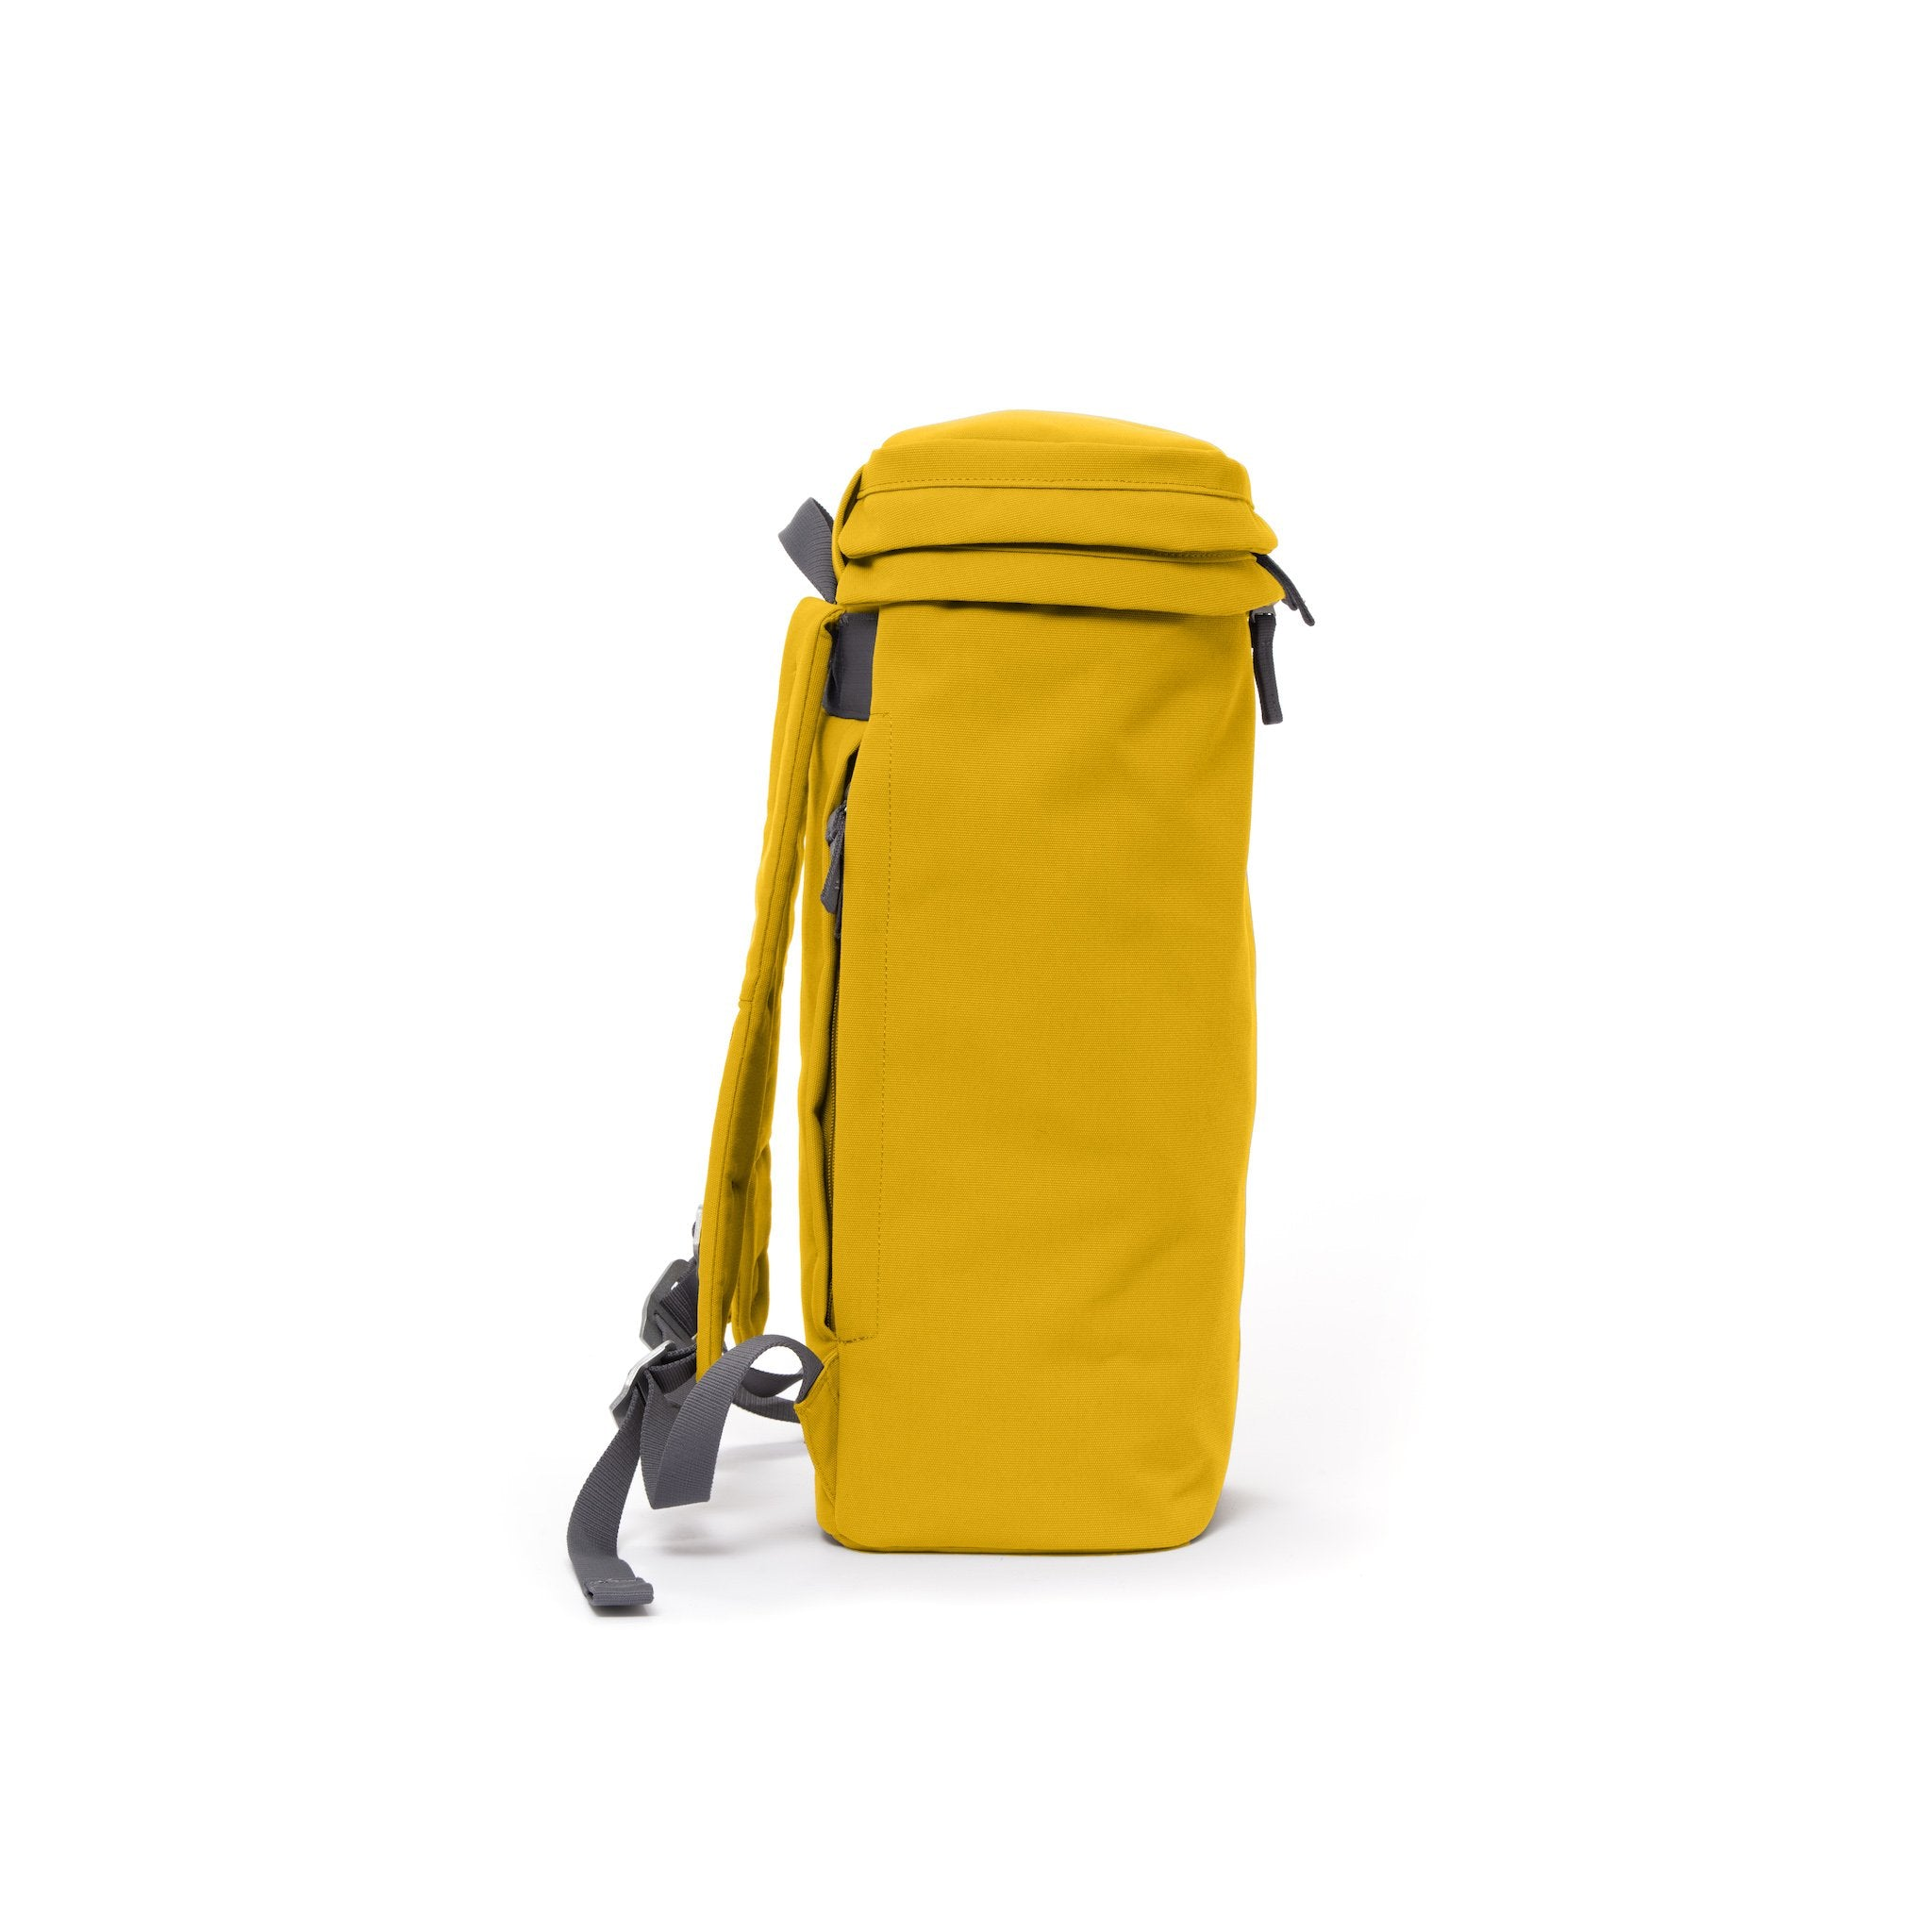 Yellow canvas backpack with top zip pocket.